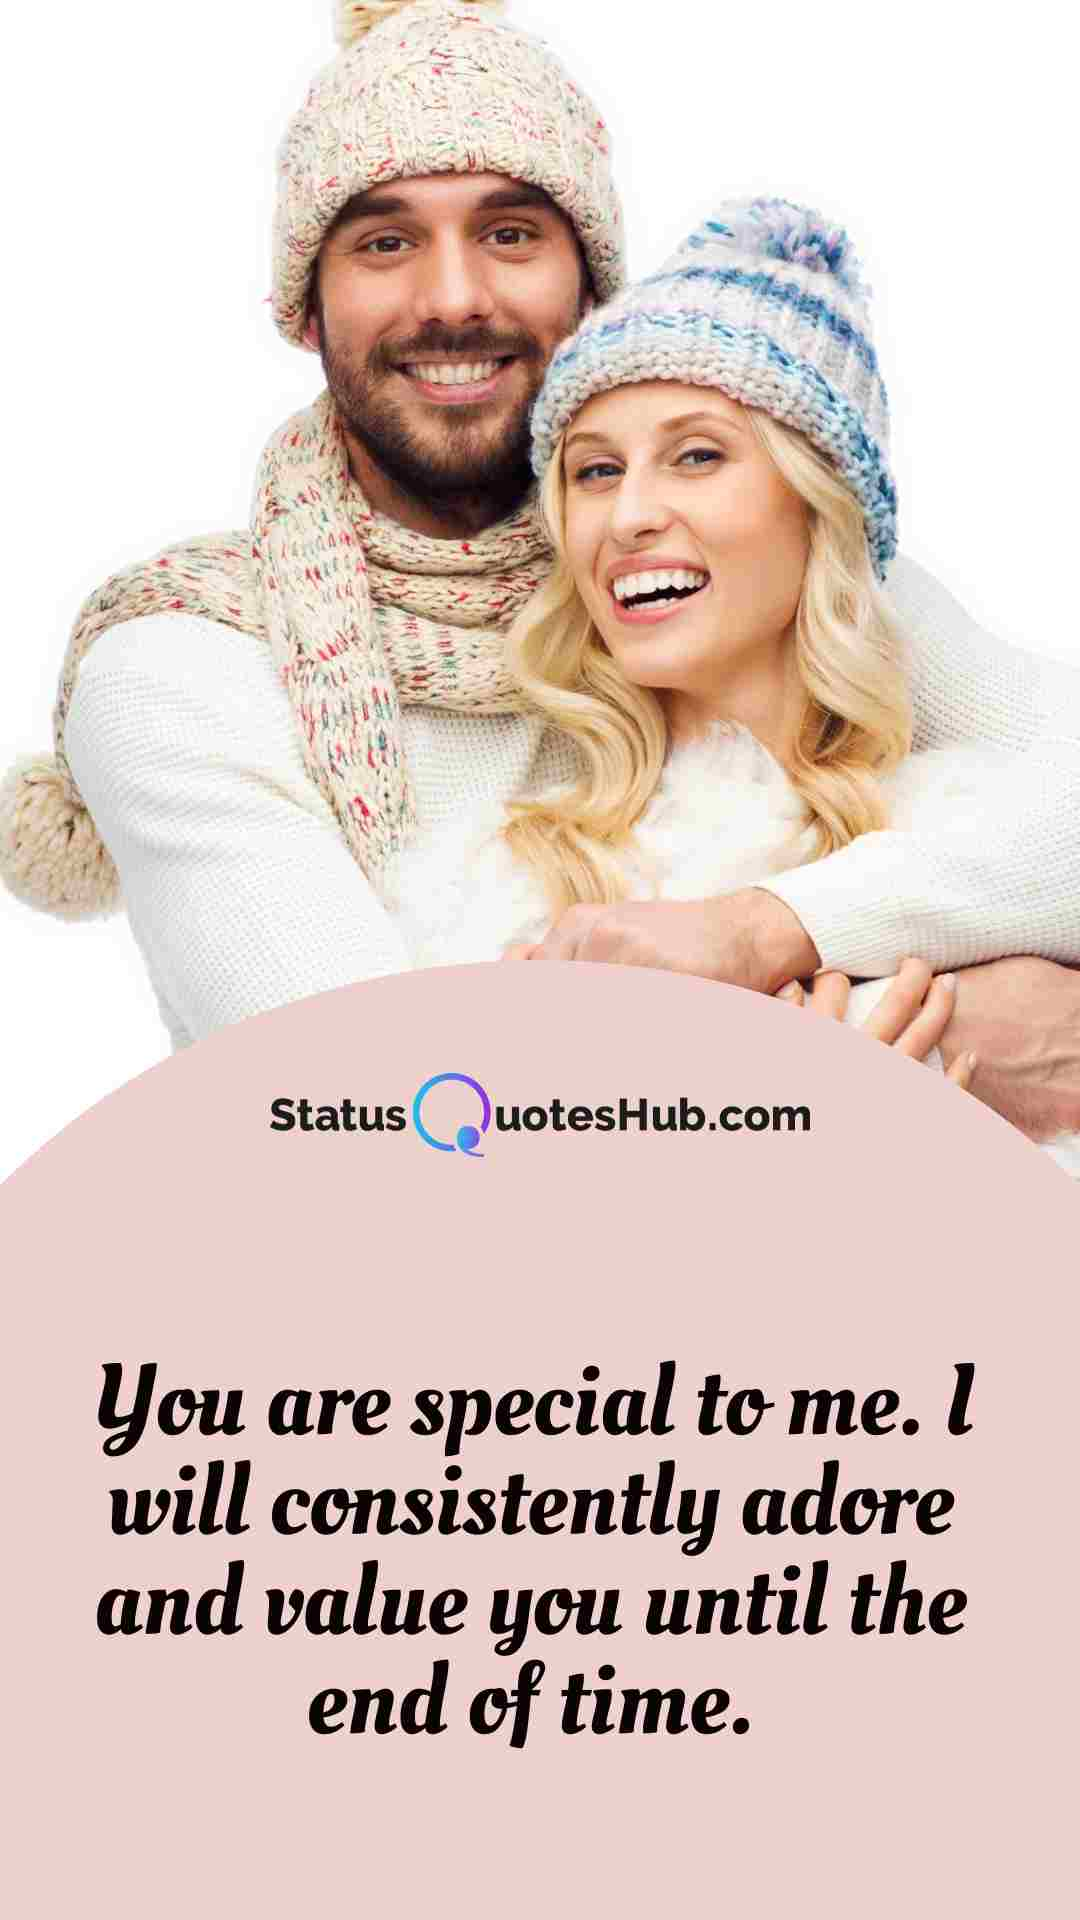 importance of wife status and quotes